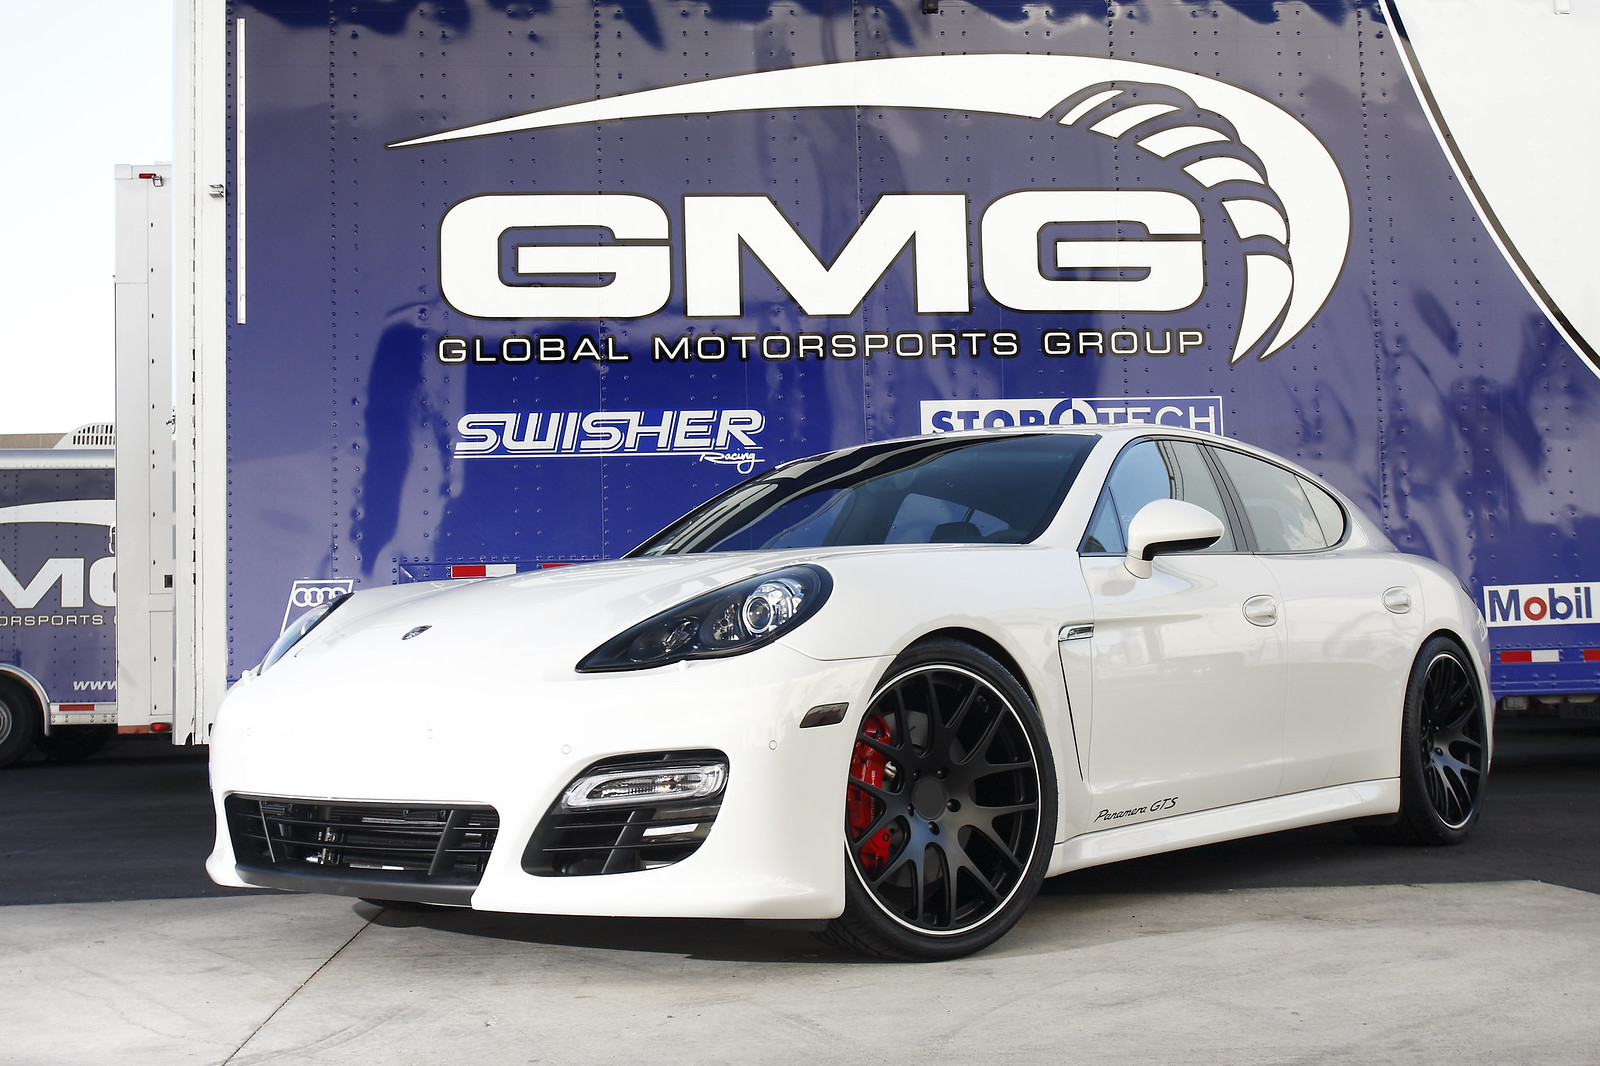 white porsche panamera gts with gmg wc gt 22 forged wheels in satin black - Porsche Panamera Black And White